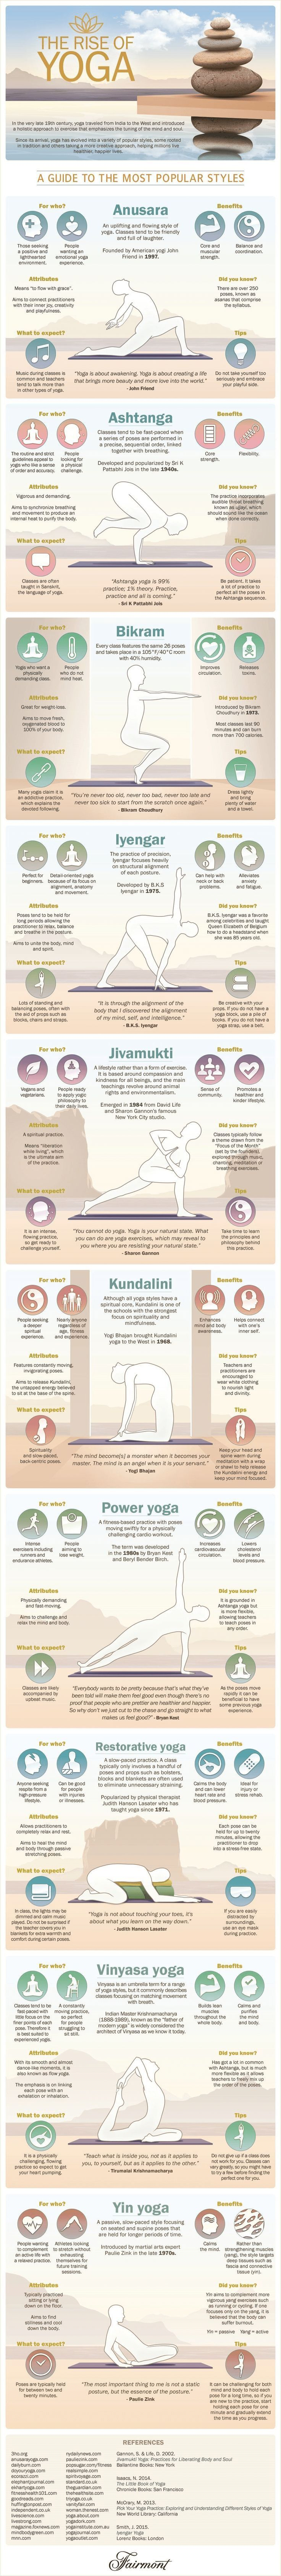 Yoga got your head spinning? A quick guide to which type might be your perfect m...